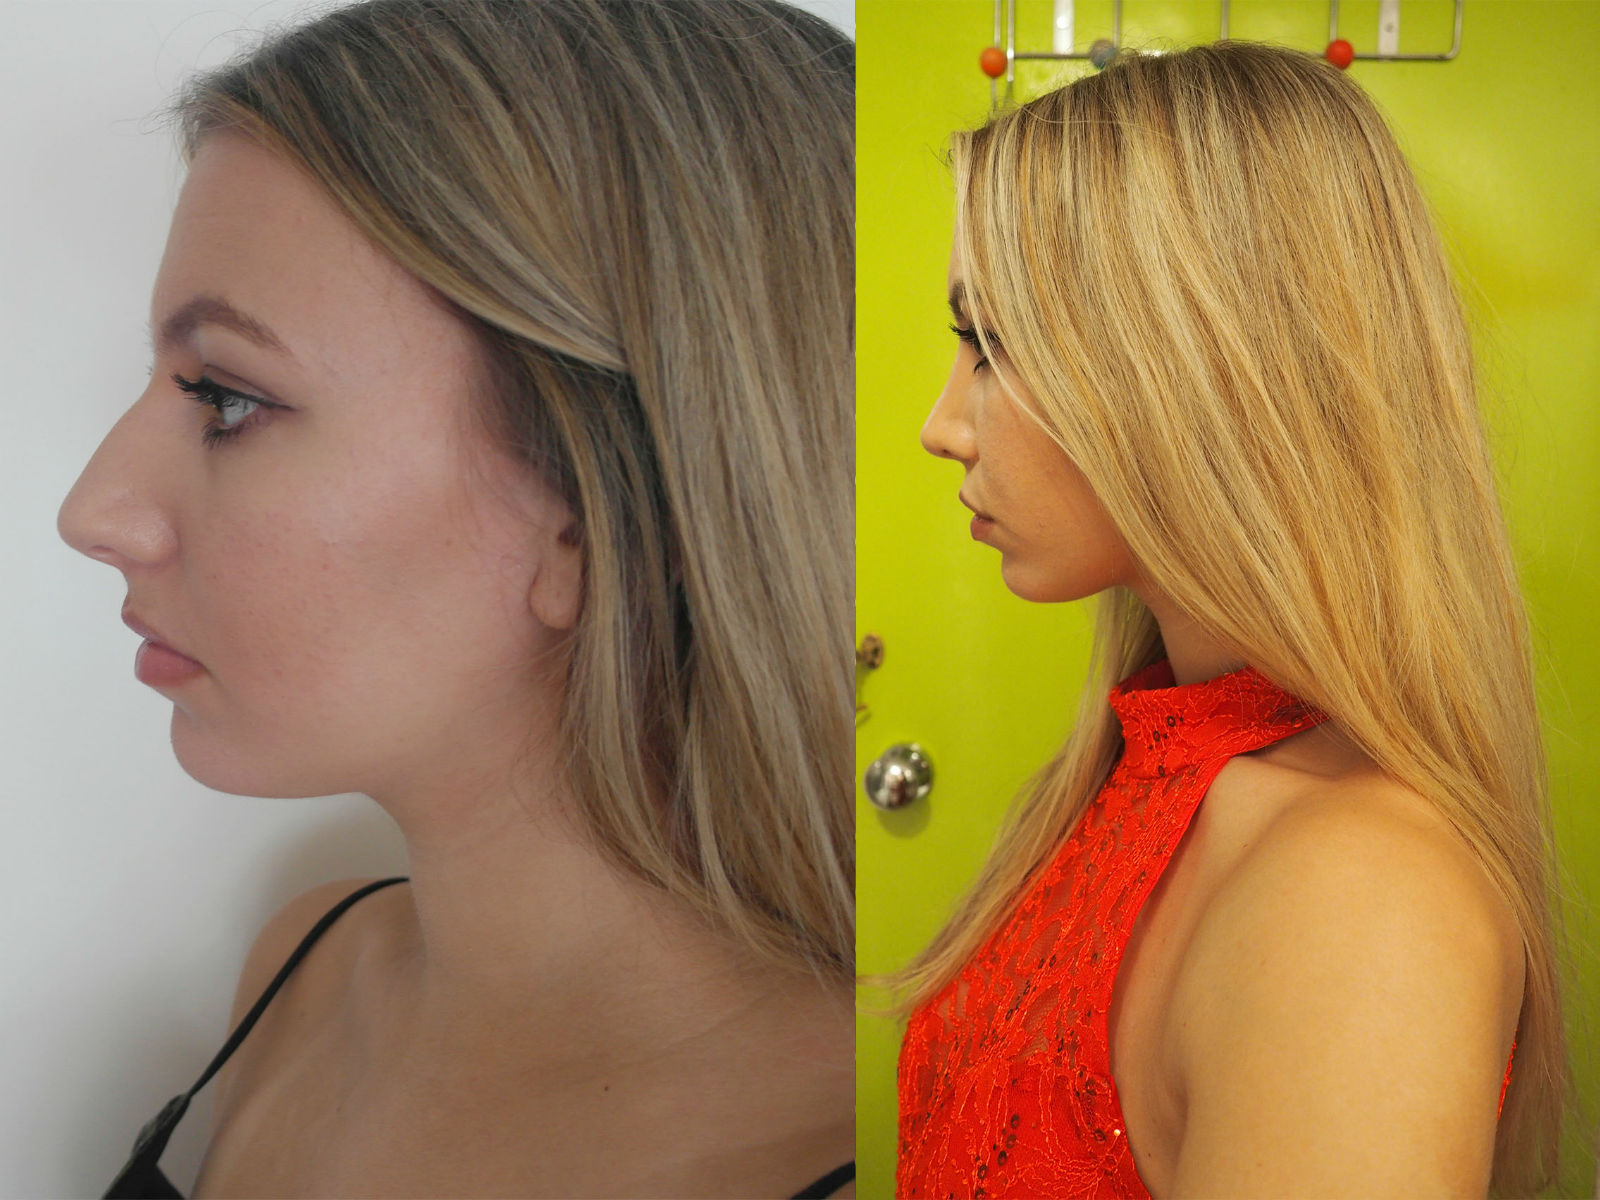 Scarlett London Rhinoplasty